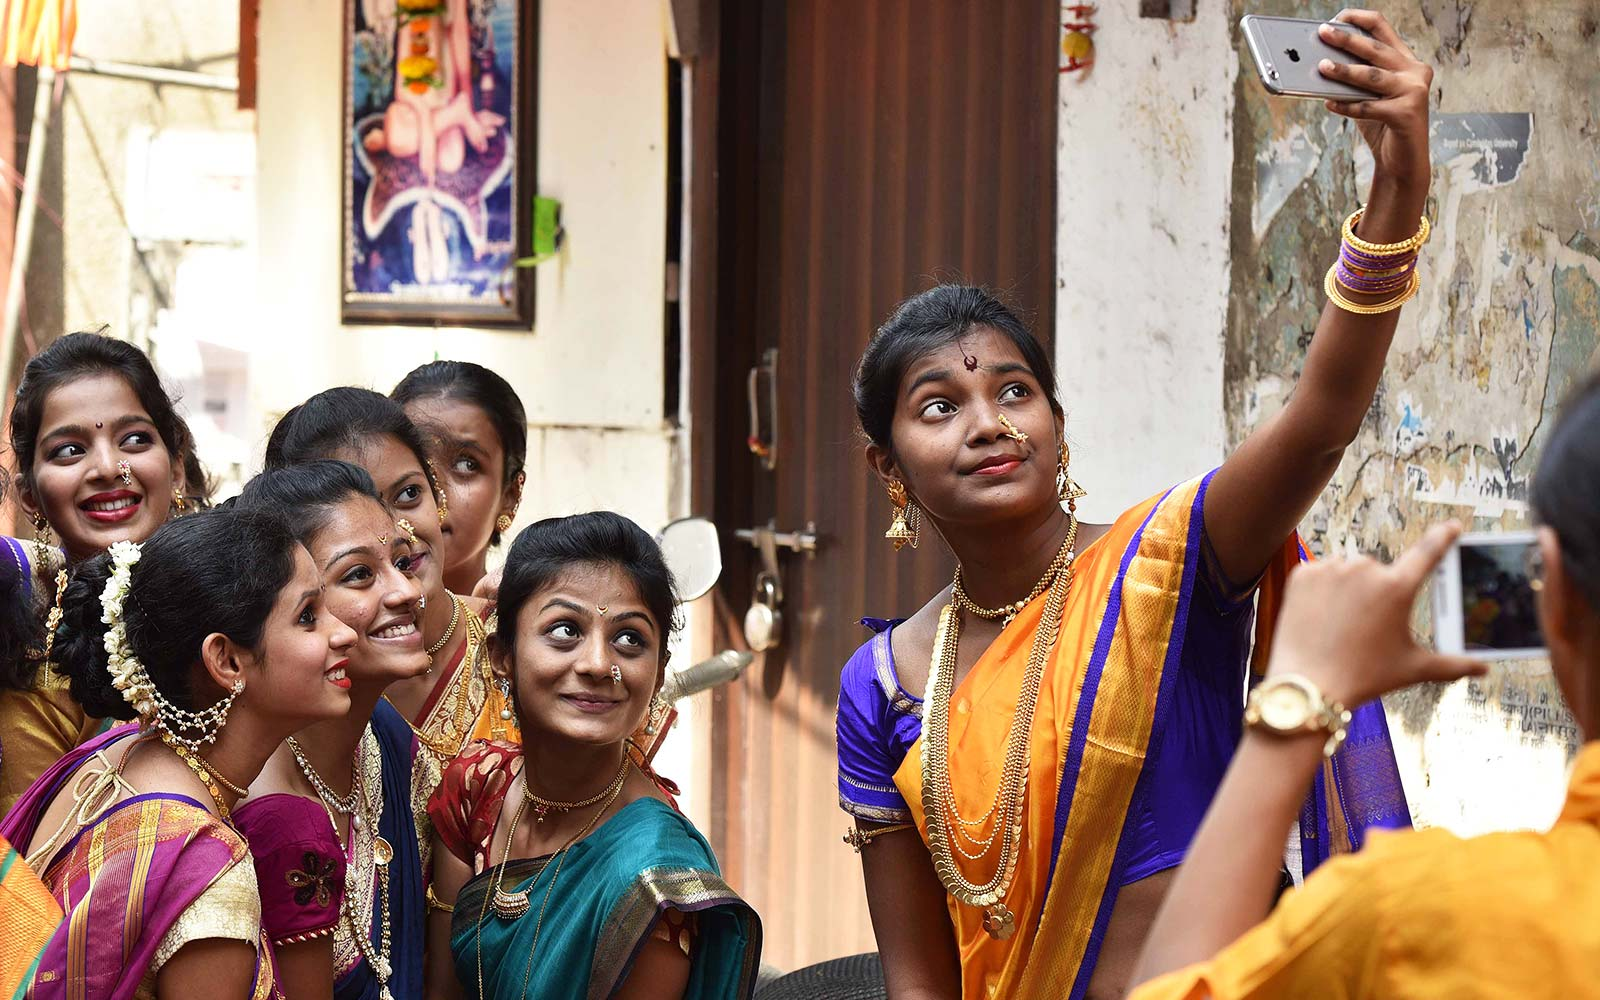 Girls take selfie during Gudi Padwa procession in Mumbai, India